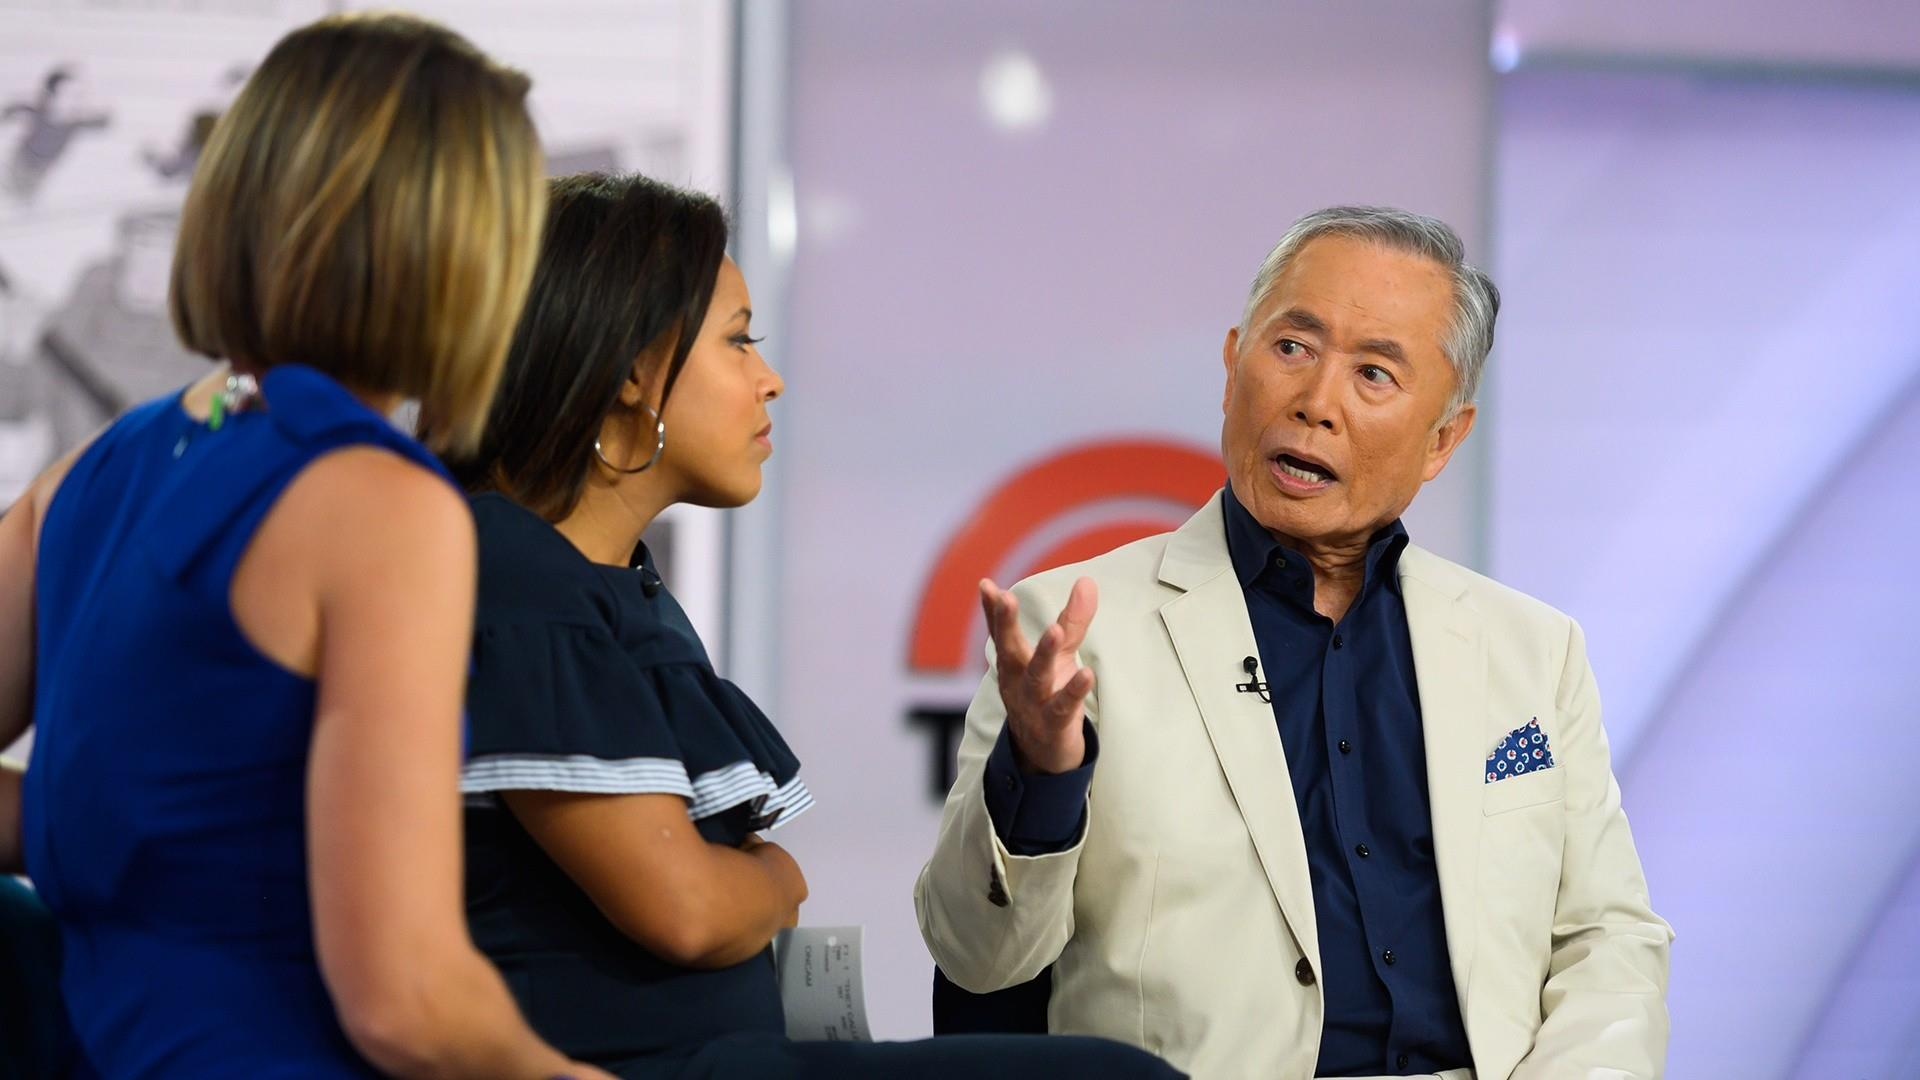 George Takei opens up about his family's imprisonment during WWII